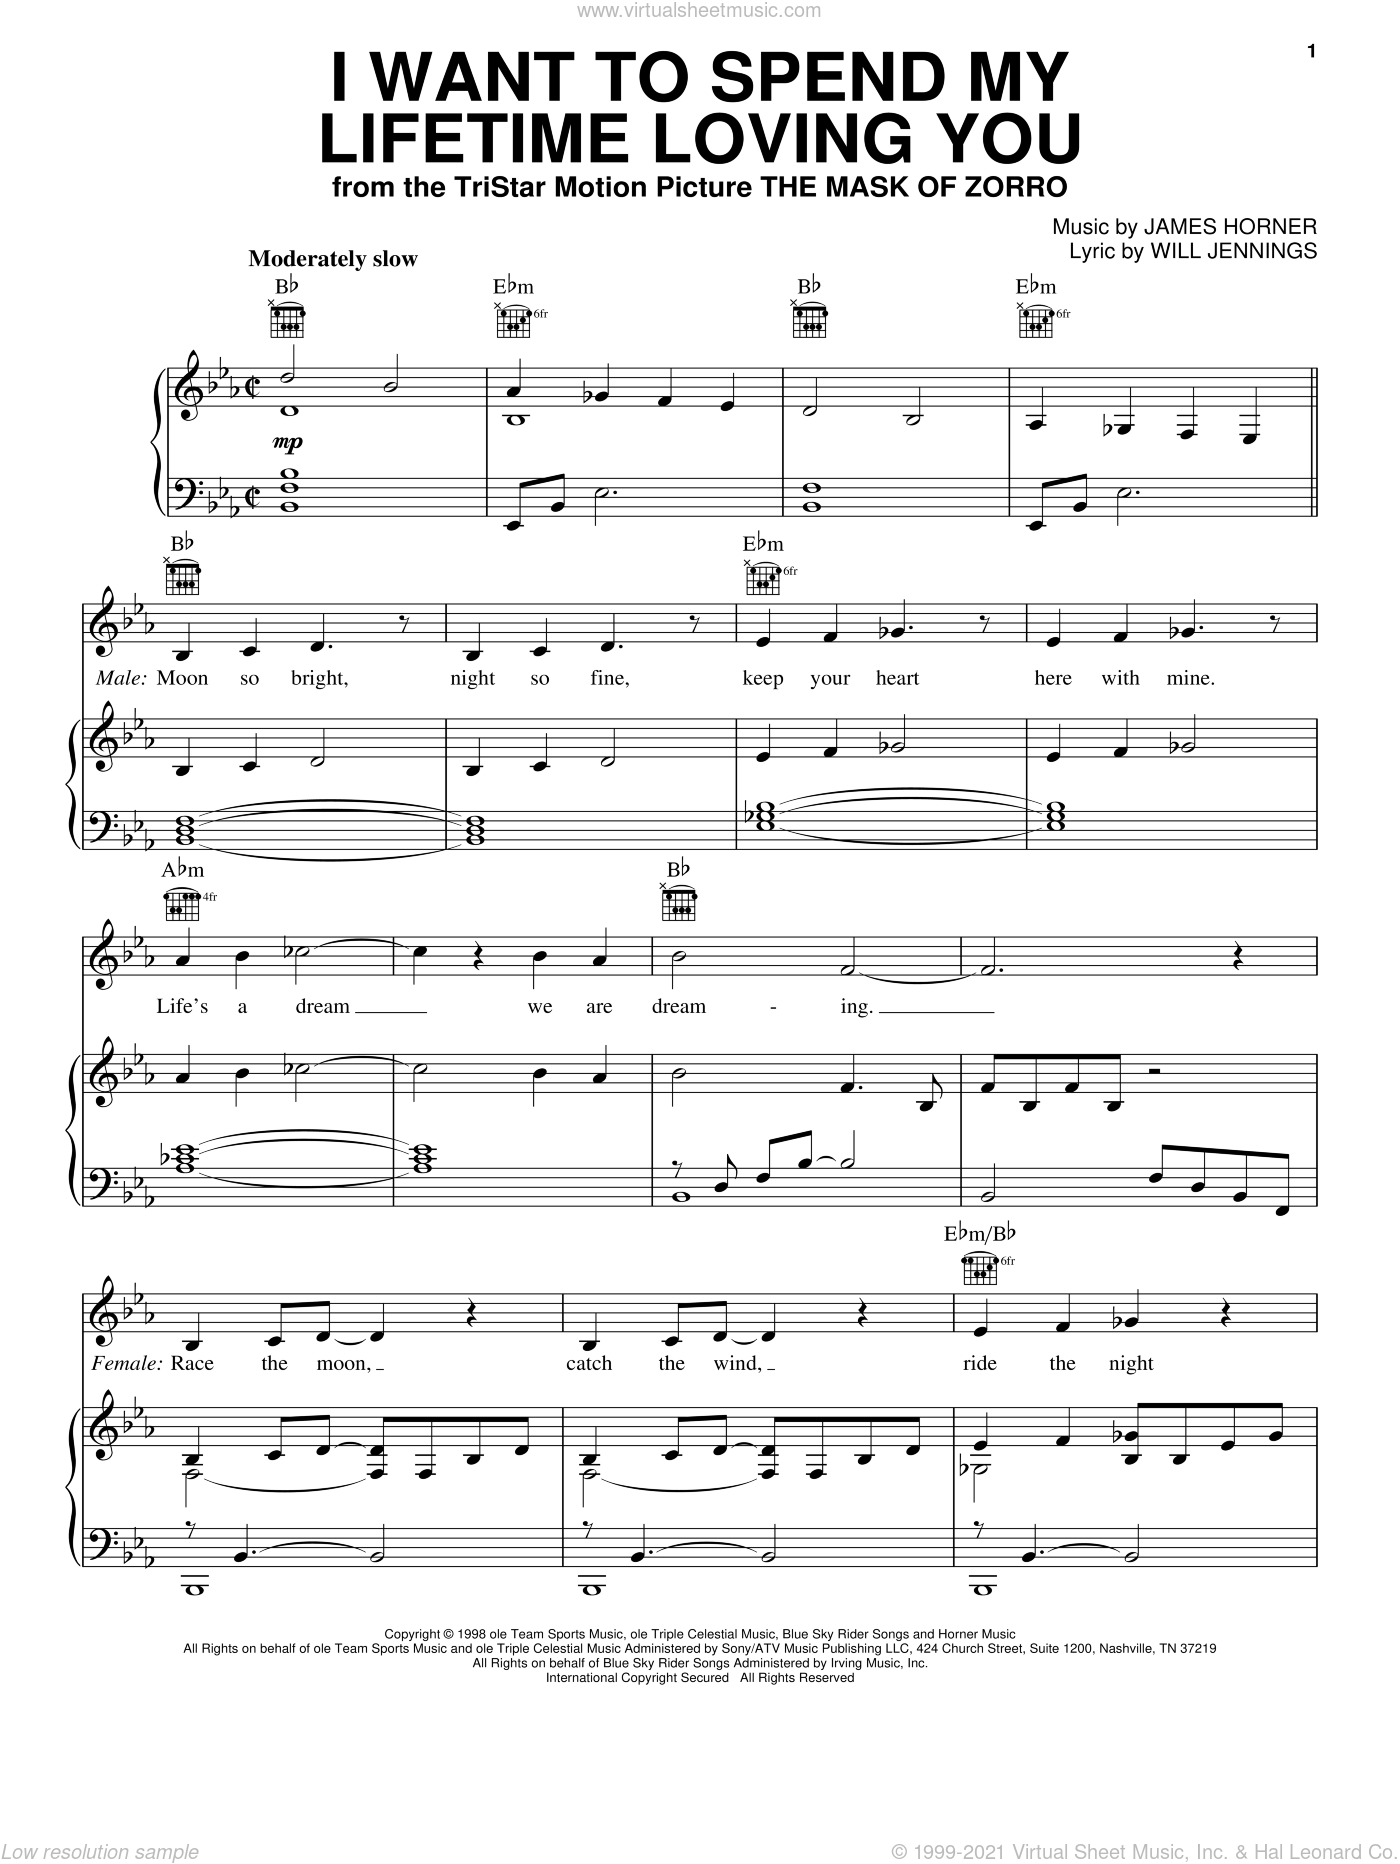 I Want To Spend My Lifetime Loving You sheet music for voice, piano or guitar by Marc Anthony and Tina Arena, James Horner and Will Jennings, wedding score, intermediate skill level